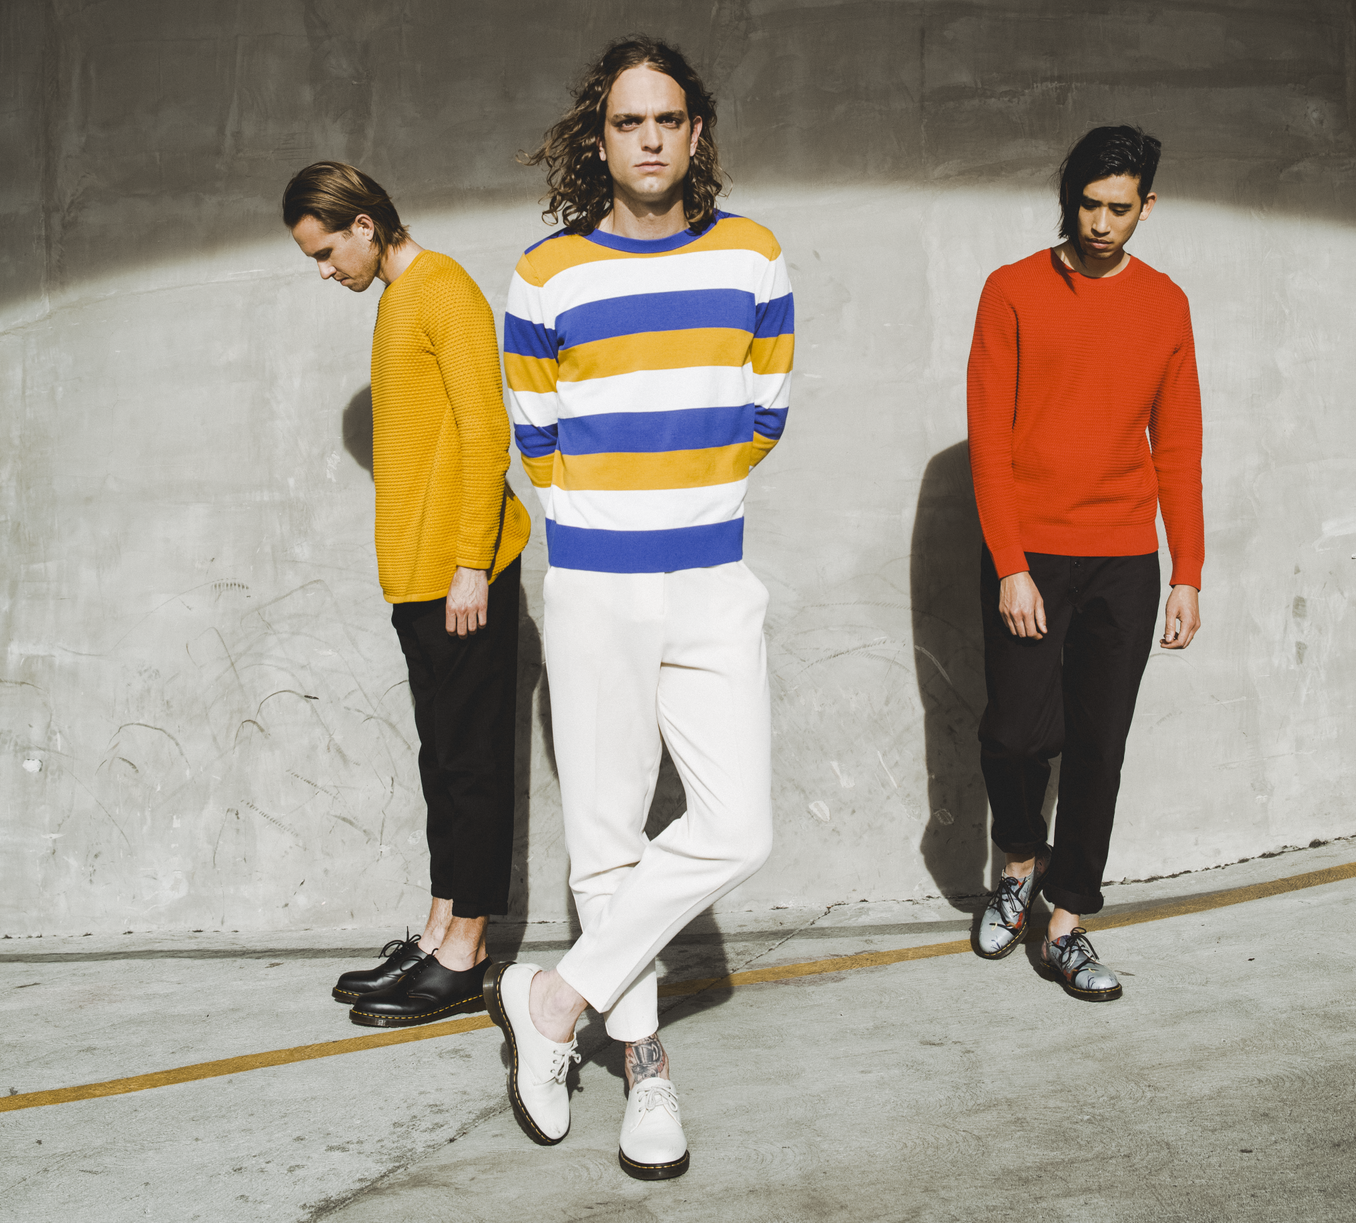 INTERVIEW: Sir Sly – Channeling Pain into Passion